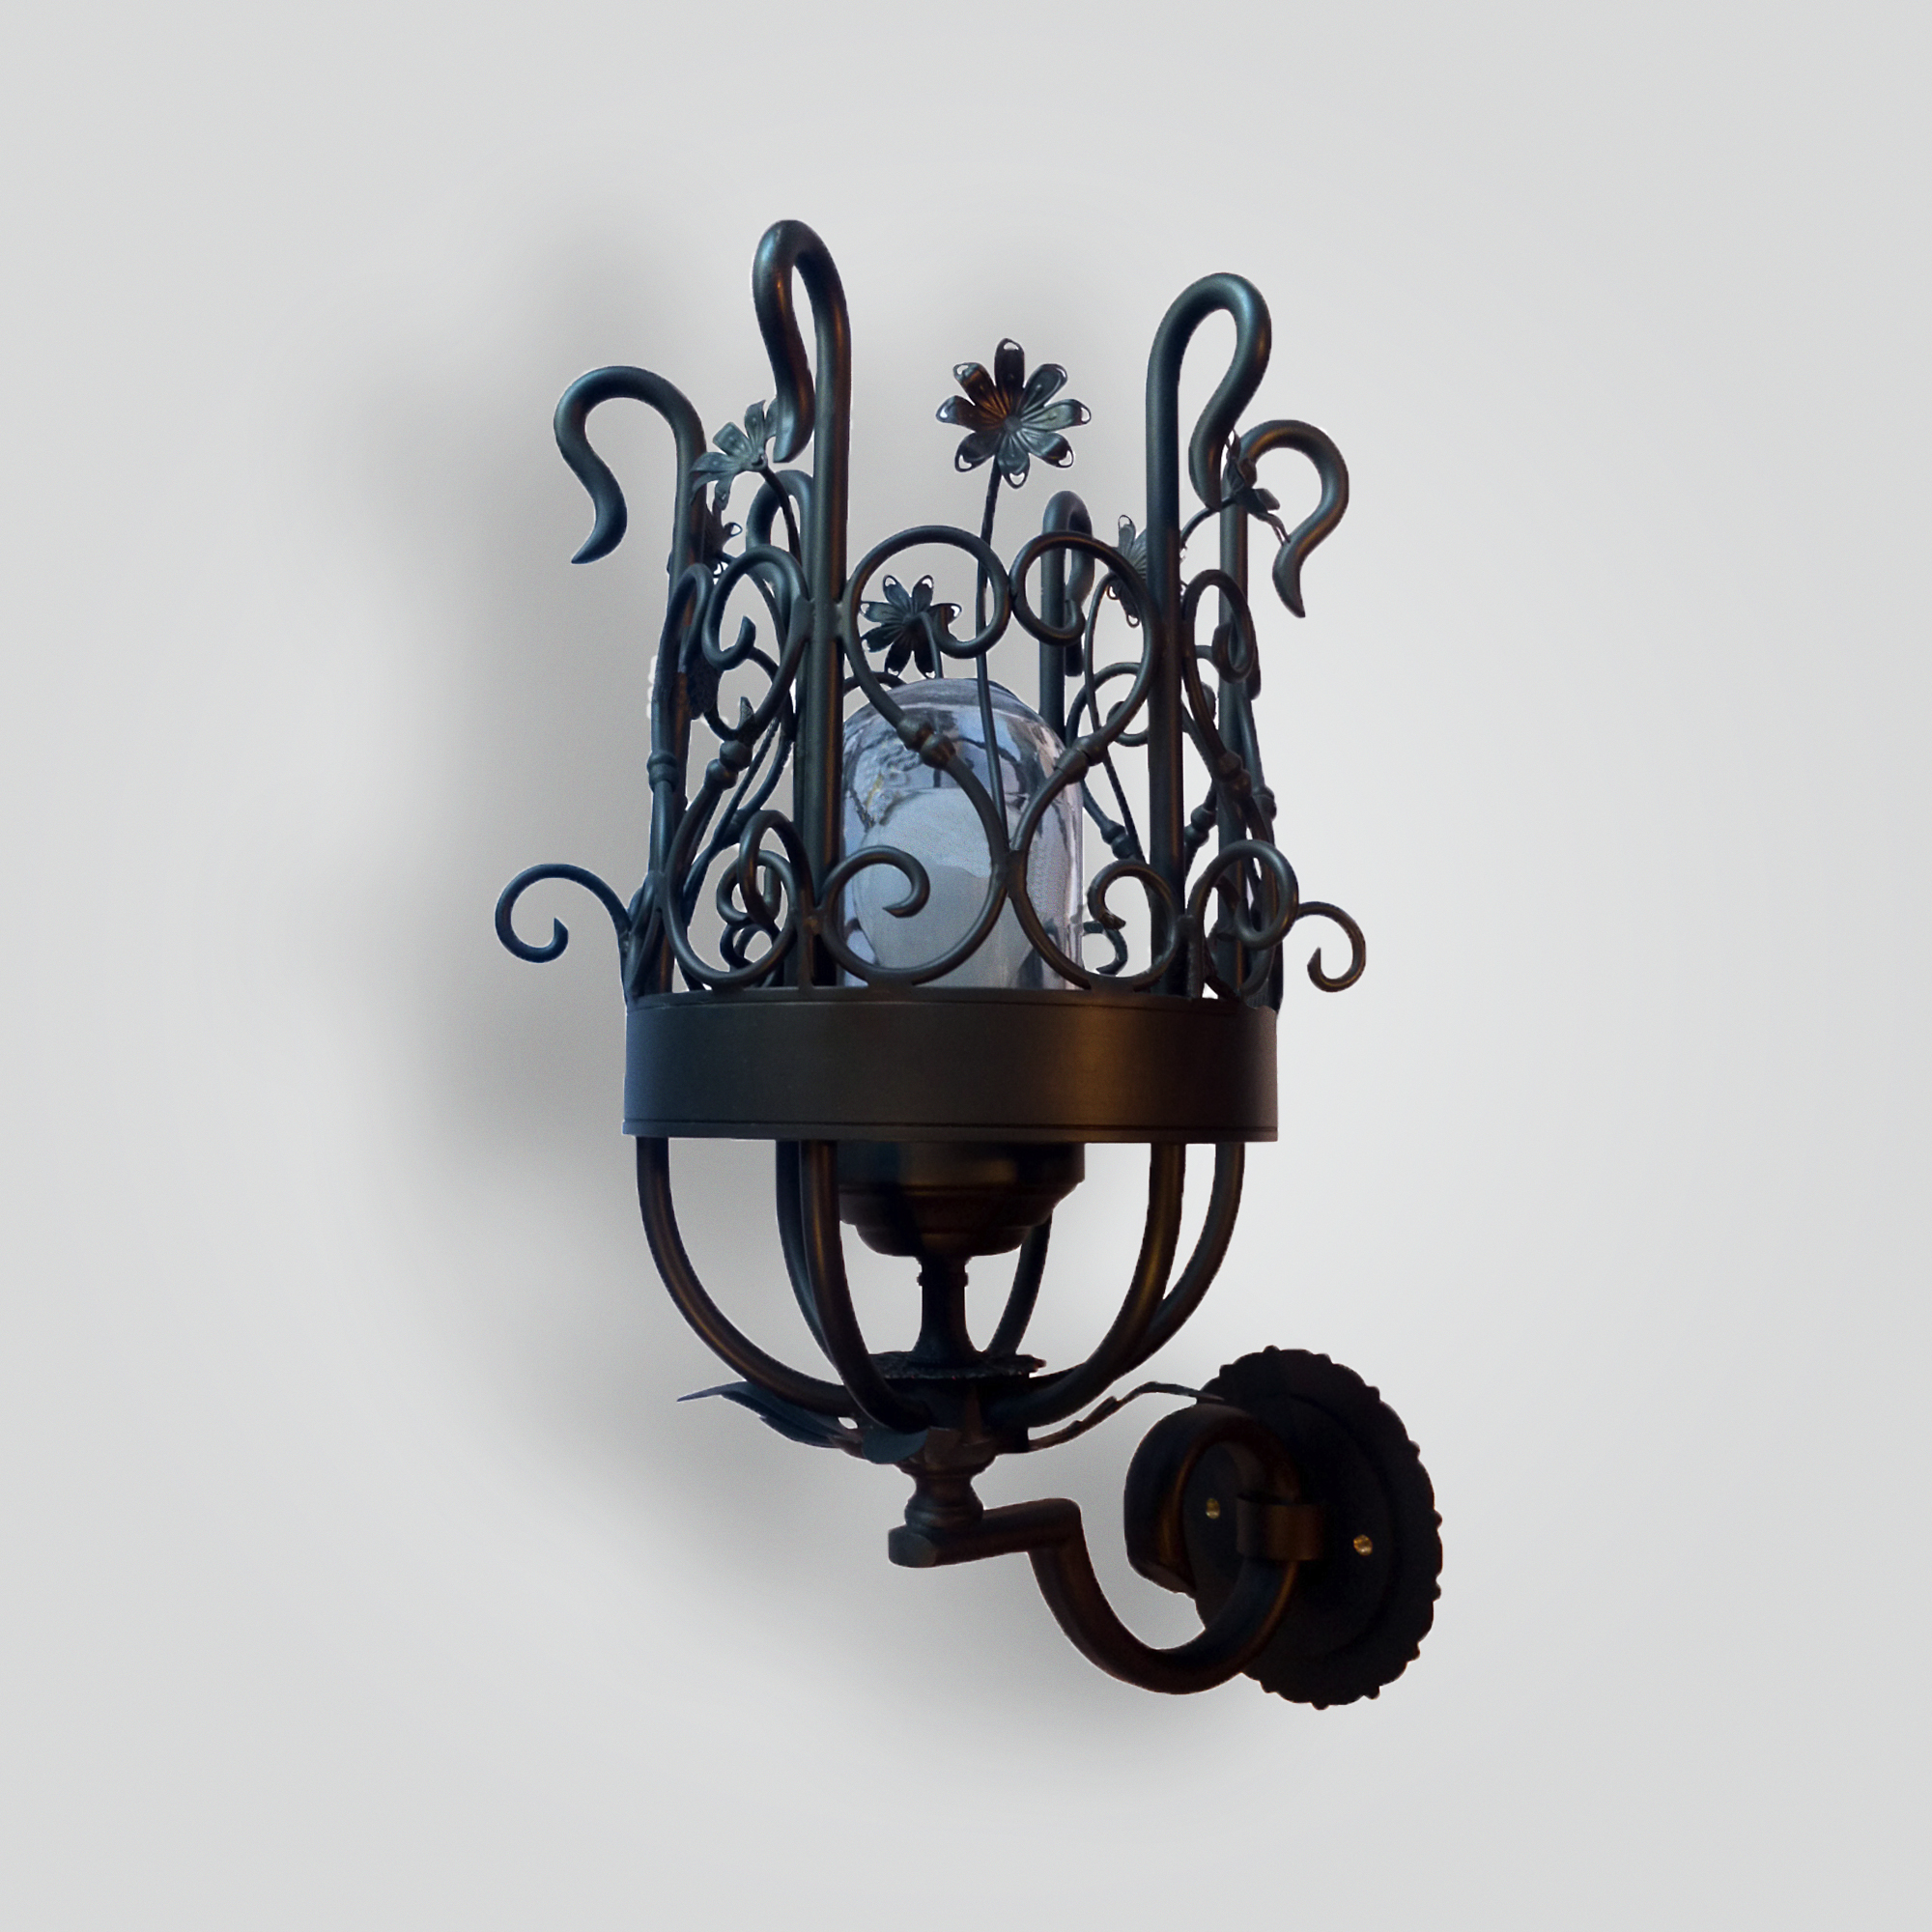 833-mb1-br-w-ba-scroll-and-flower-torchiere-wall-sconce – ADG Lighting Collection